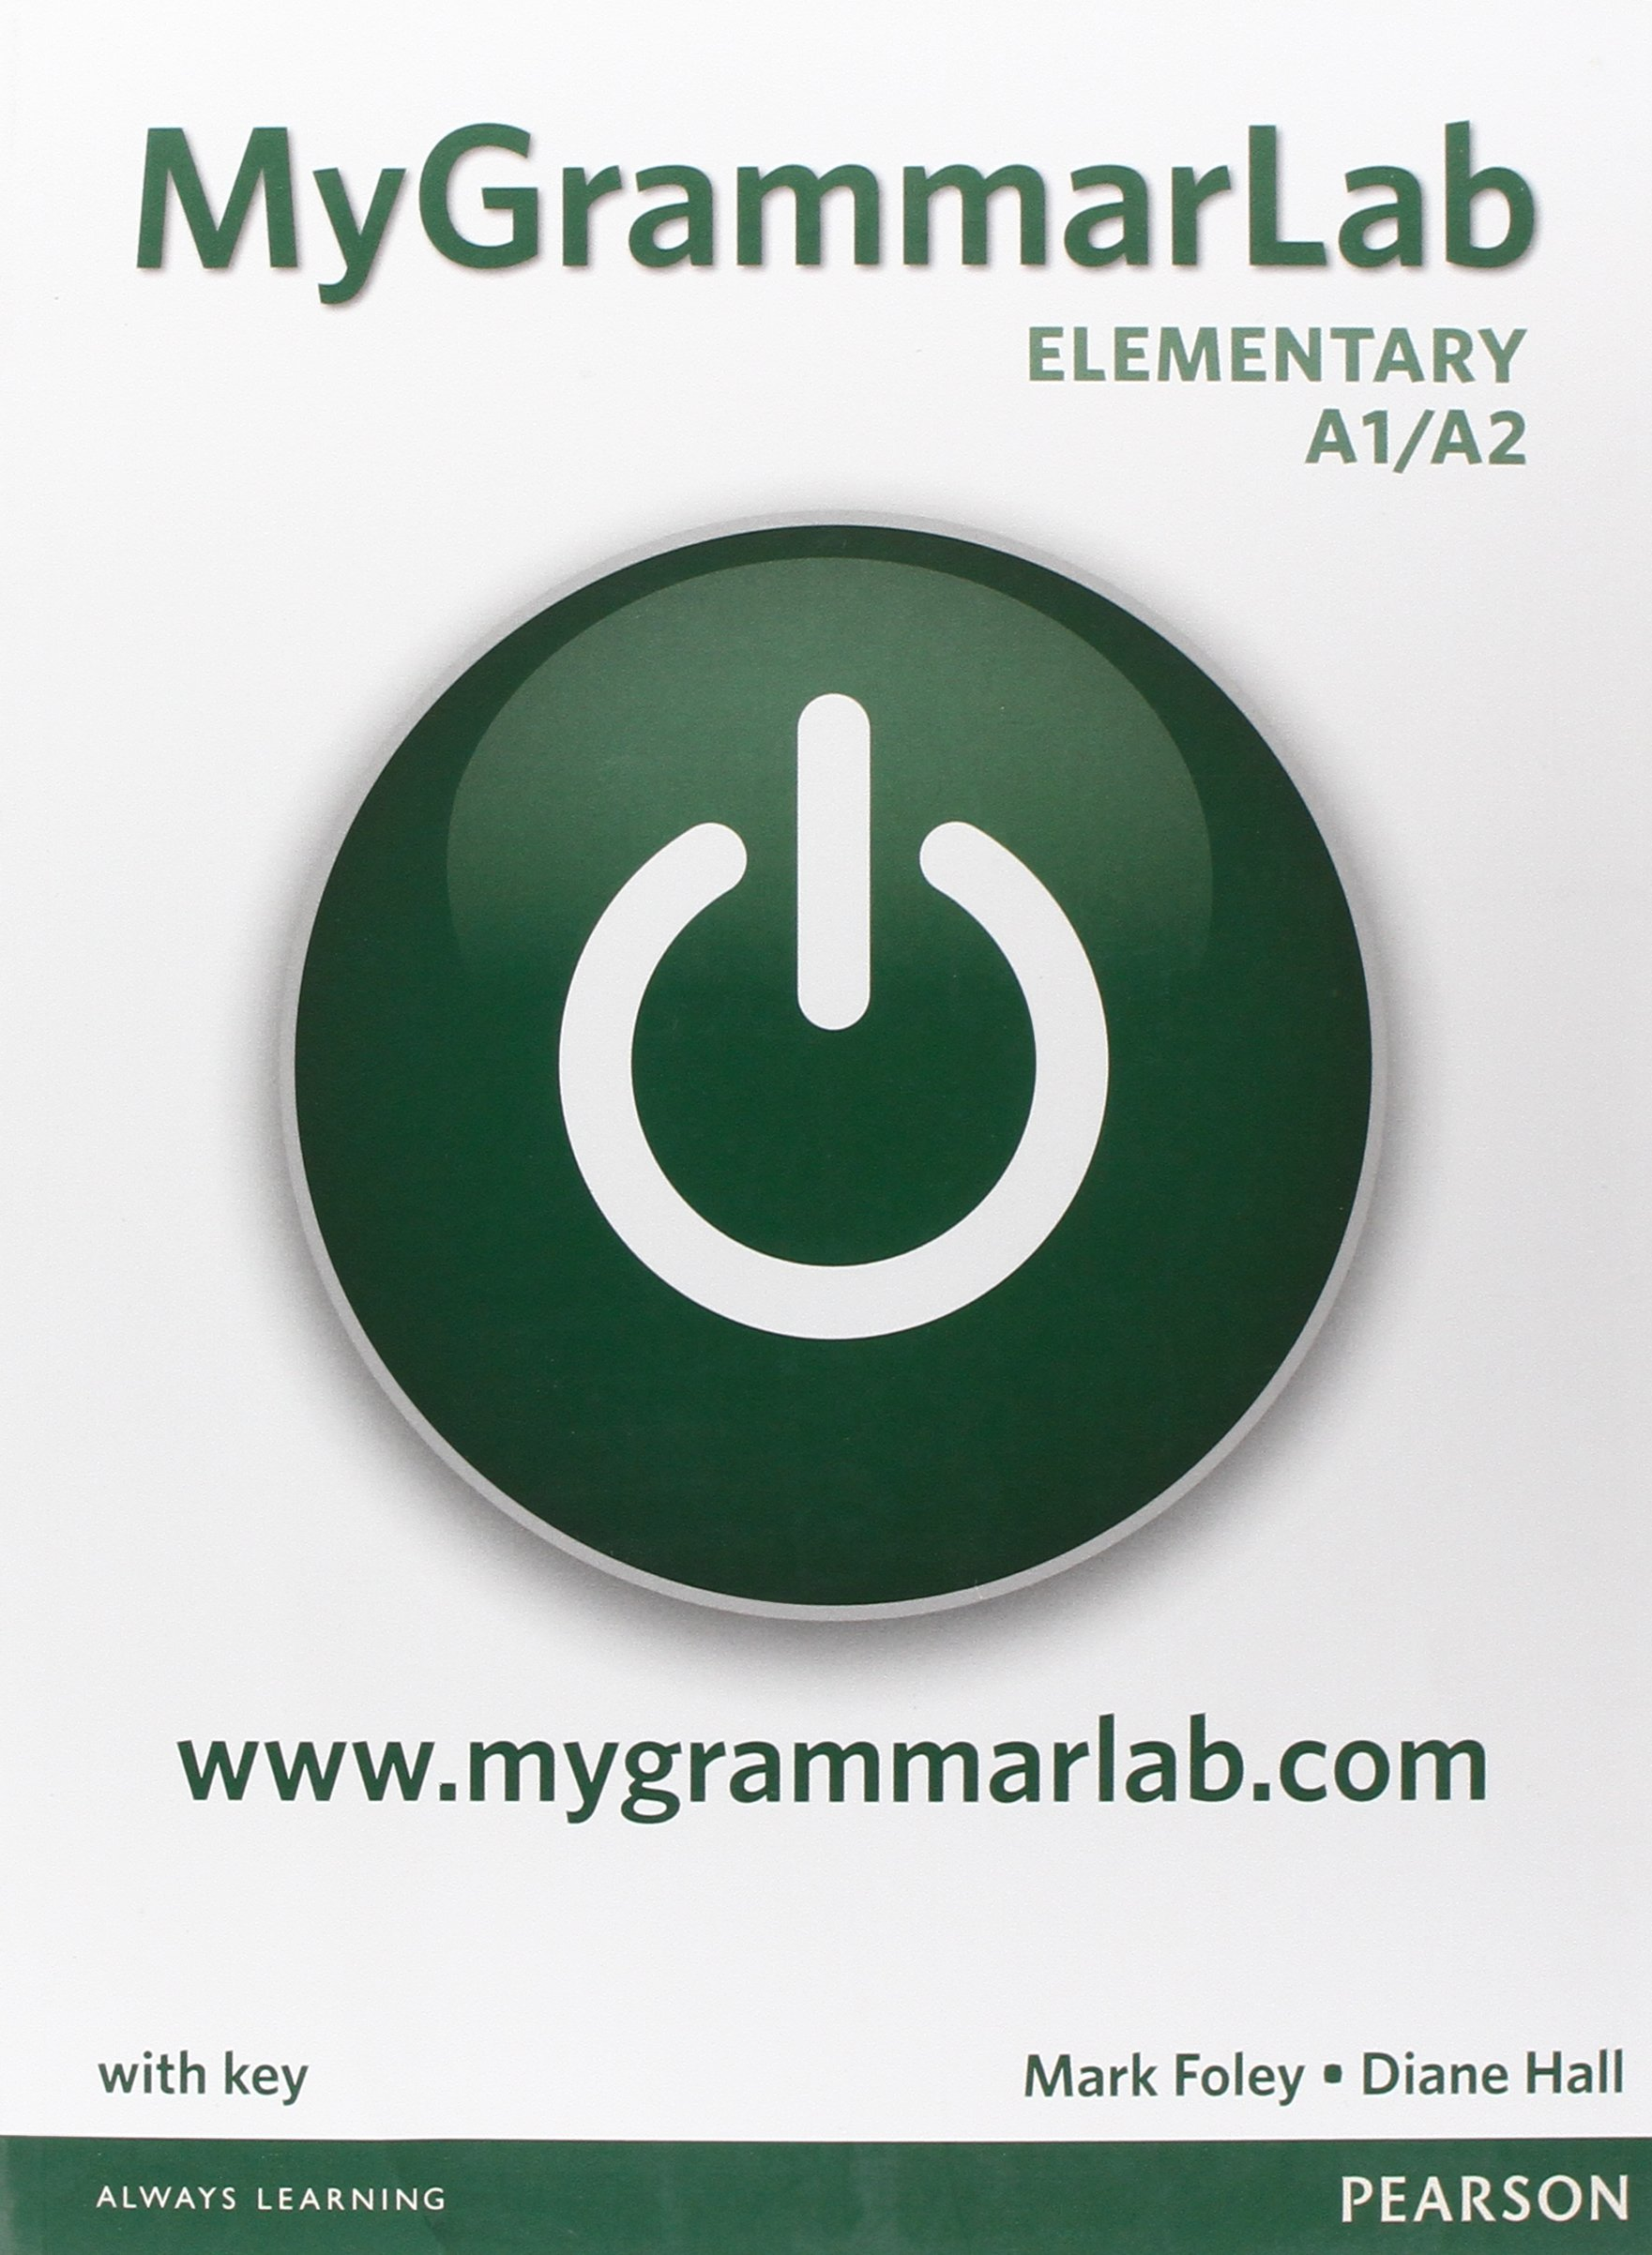 MYGRAMMARLAB ELEMENTARY Book with Answers + MyGrammarLab